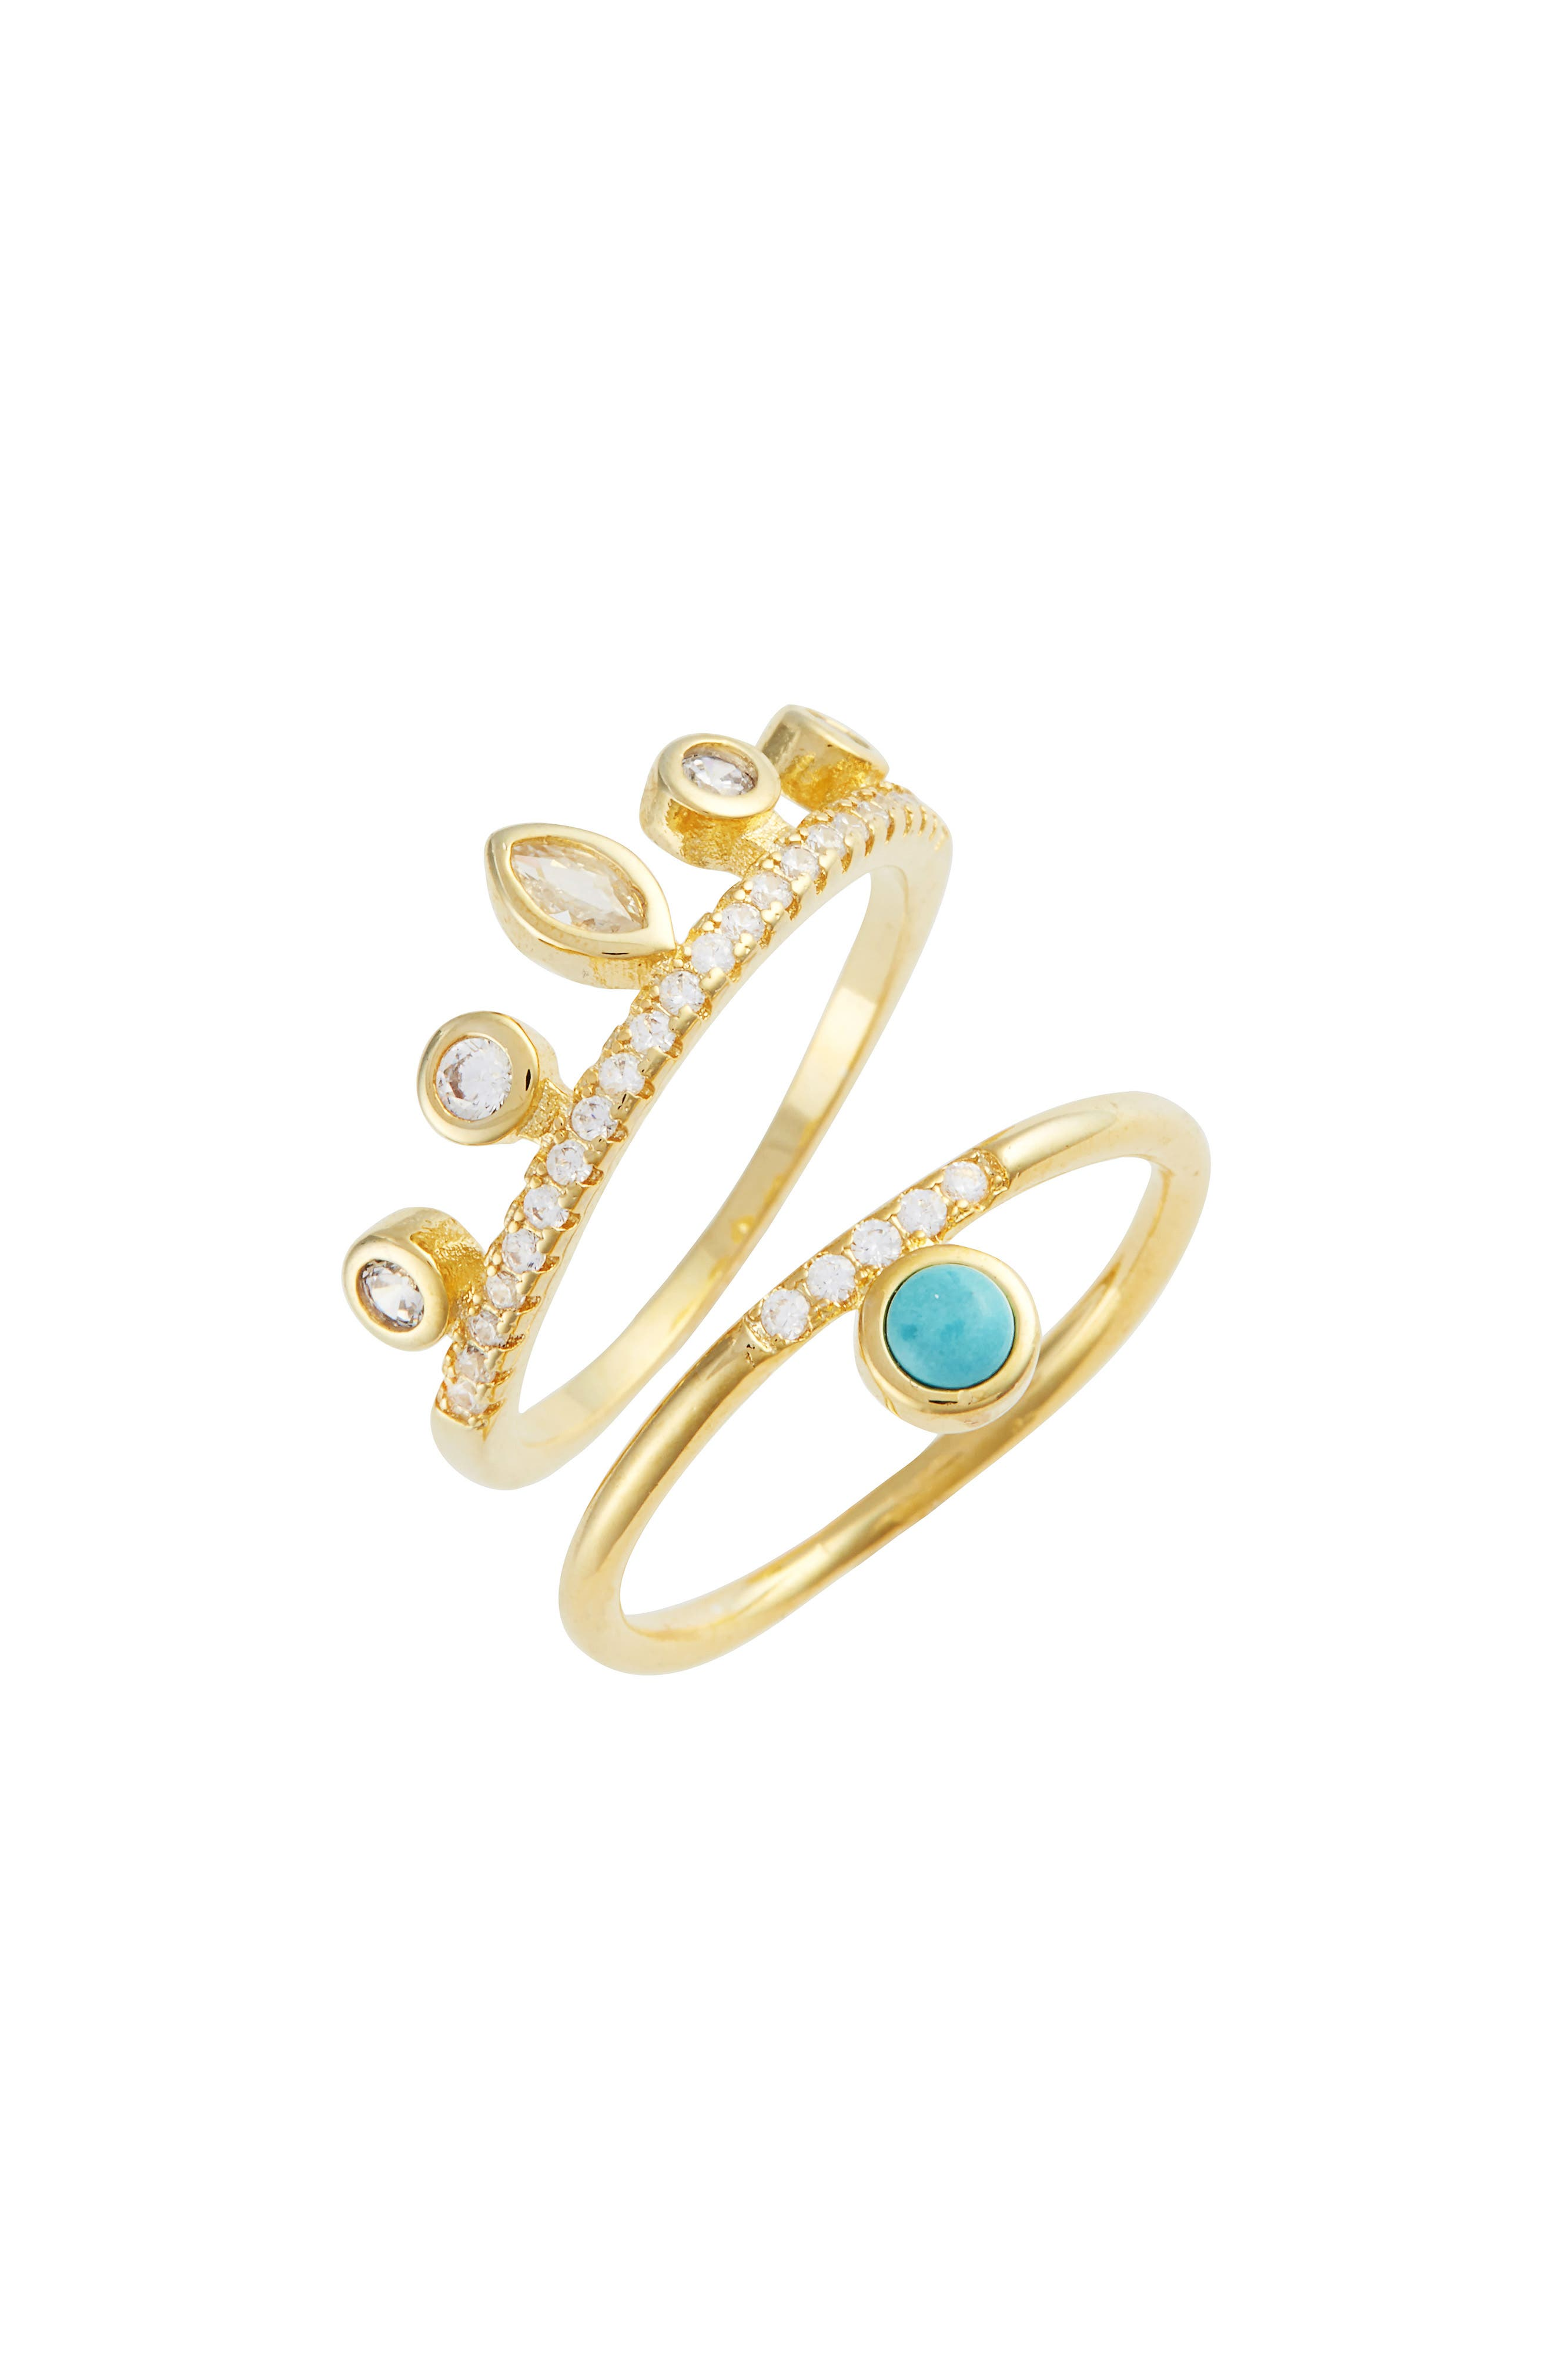 Jacinta Set of 2 Turquoise & Crystal Rings,                         Main,                         color,